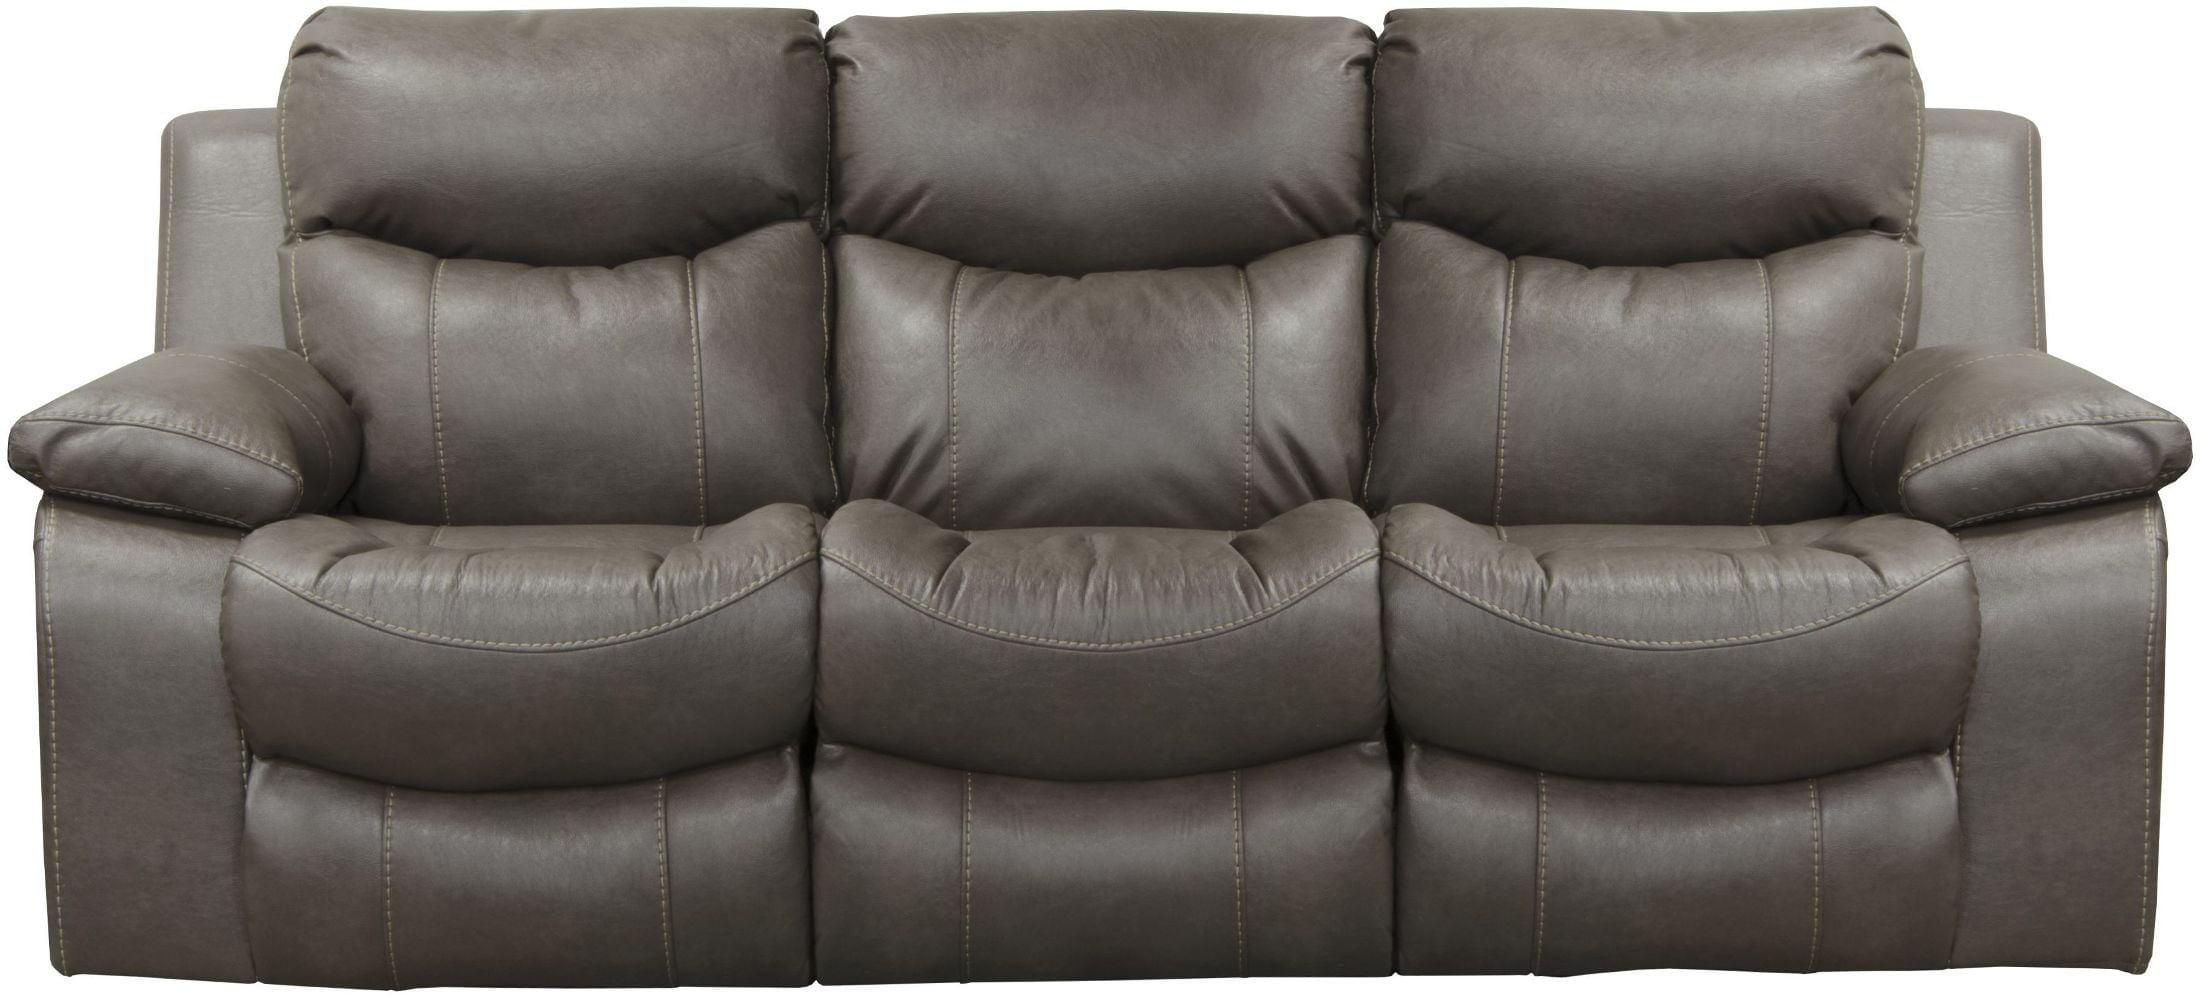 Connor Dusk Power Reclining Sofa With Drop Down Table From Catnapper